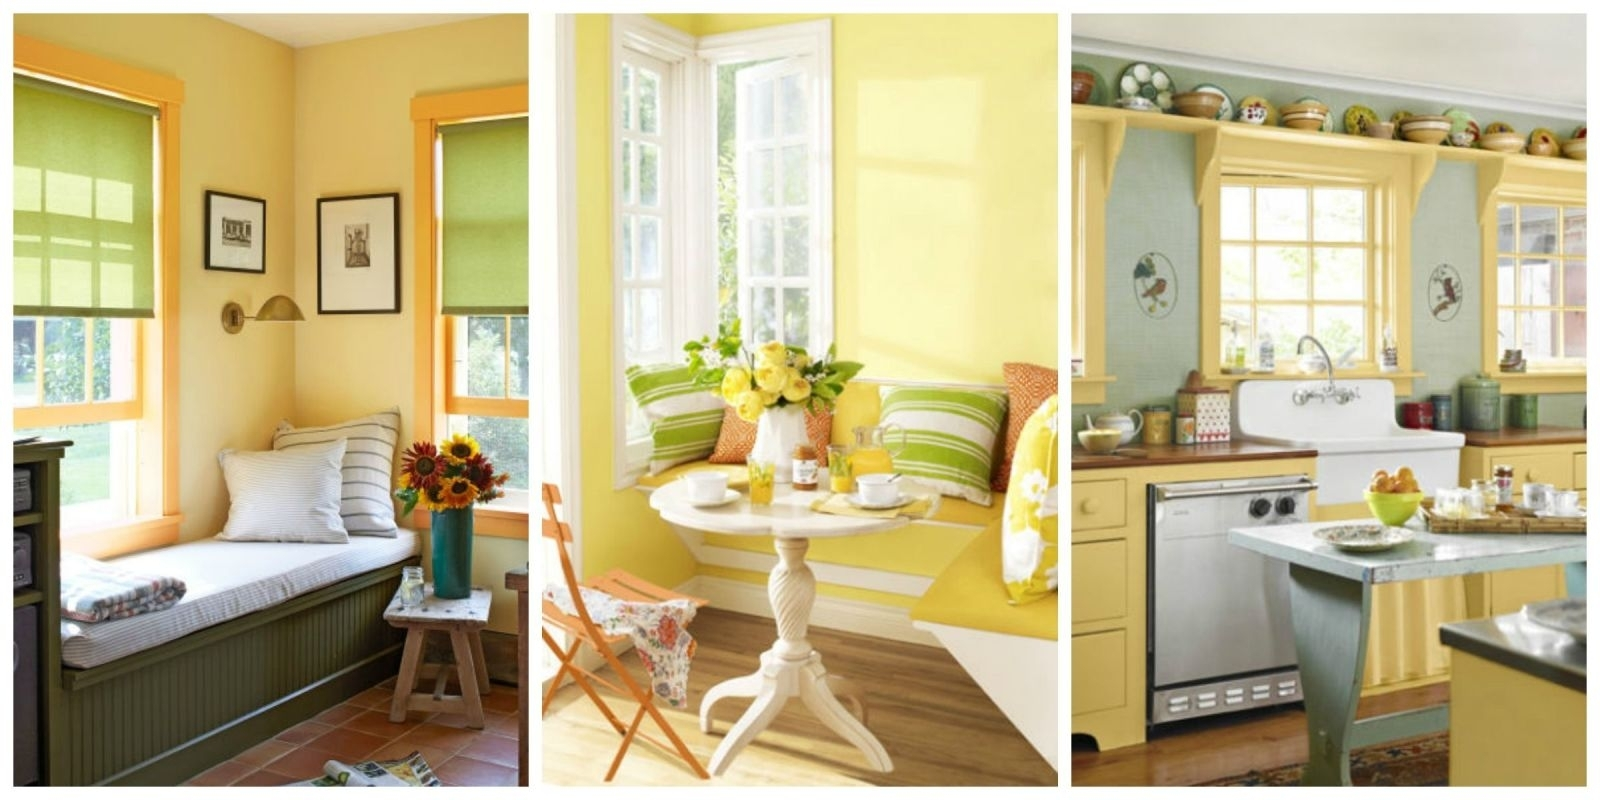 15 Tips To Add Decorative Accents To Your Kitchen | Gosiadesign Regarding 2017 Wall Accents For Yellow Room (View 2 of 15)